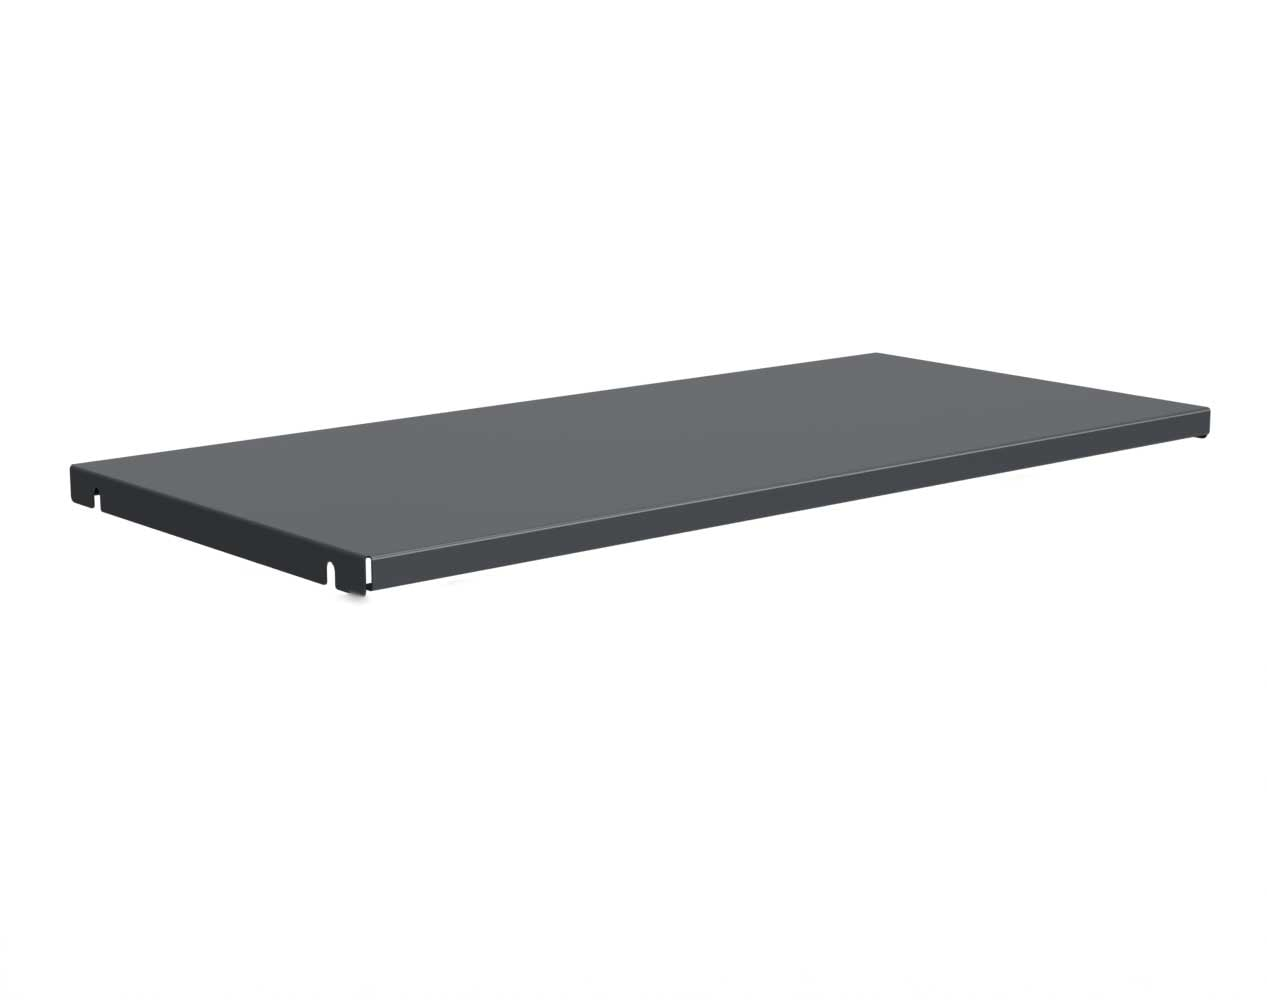 Adjustable Shelf for 72 in. W x 24 in. D Cabinet